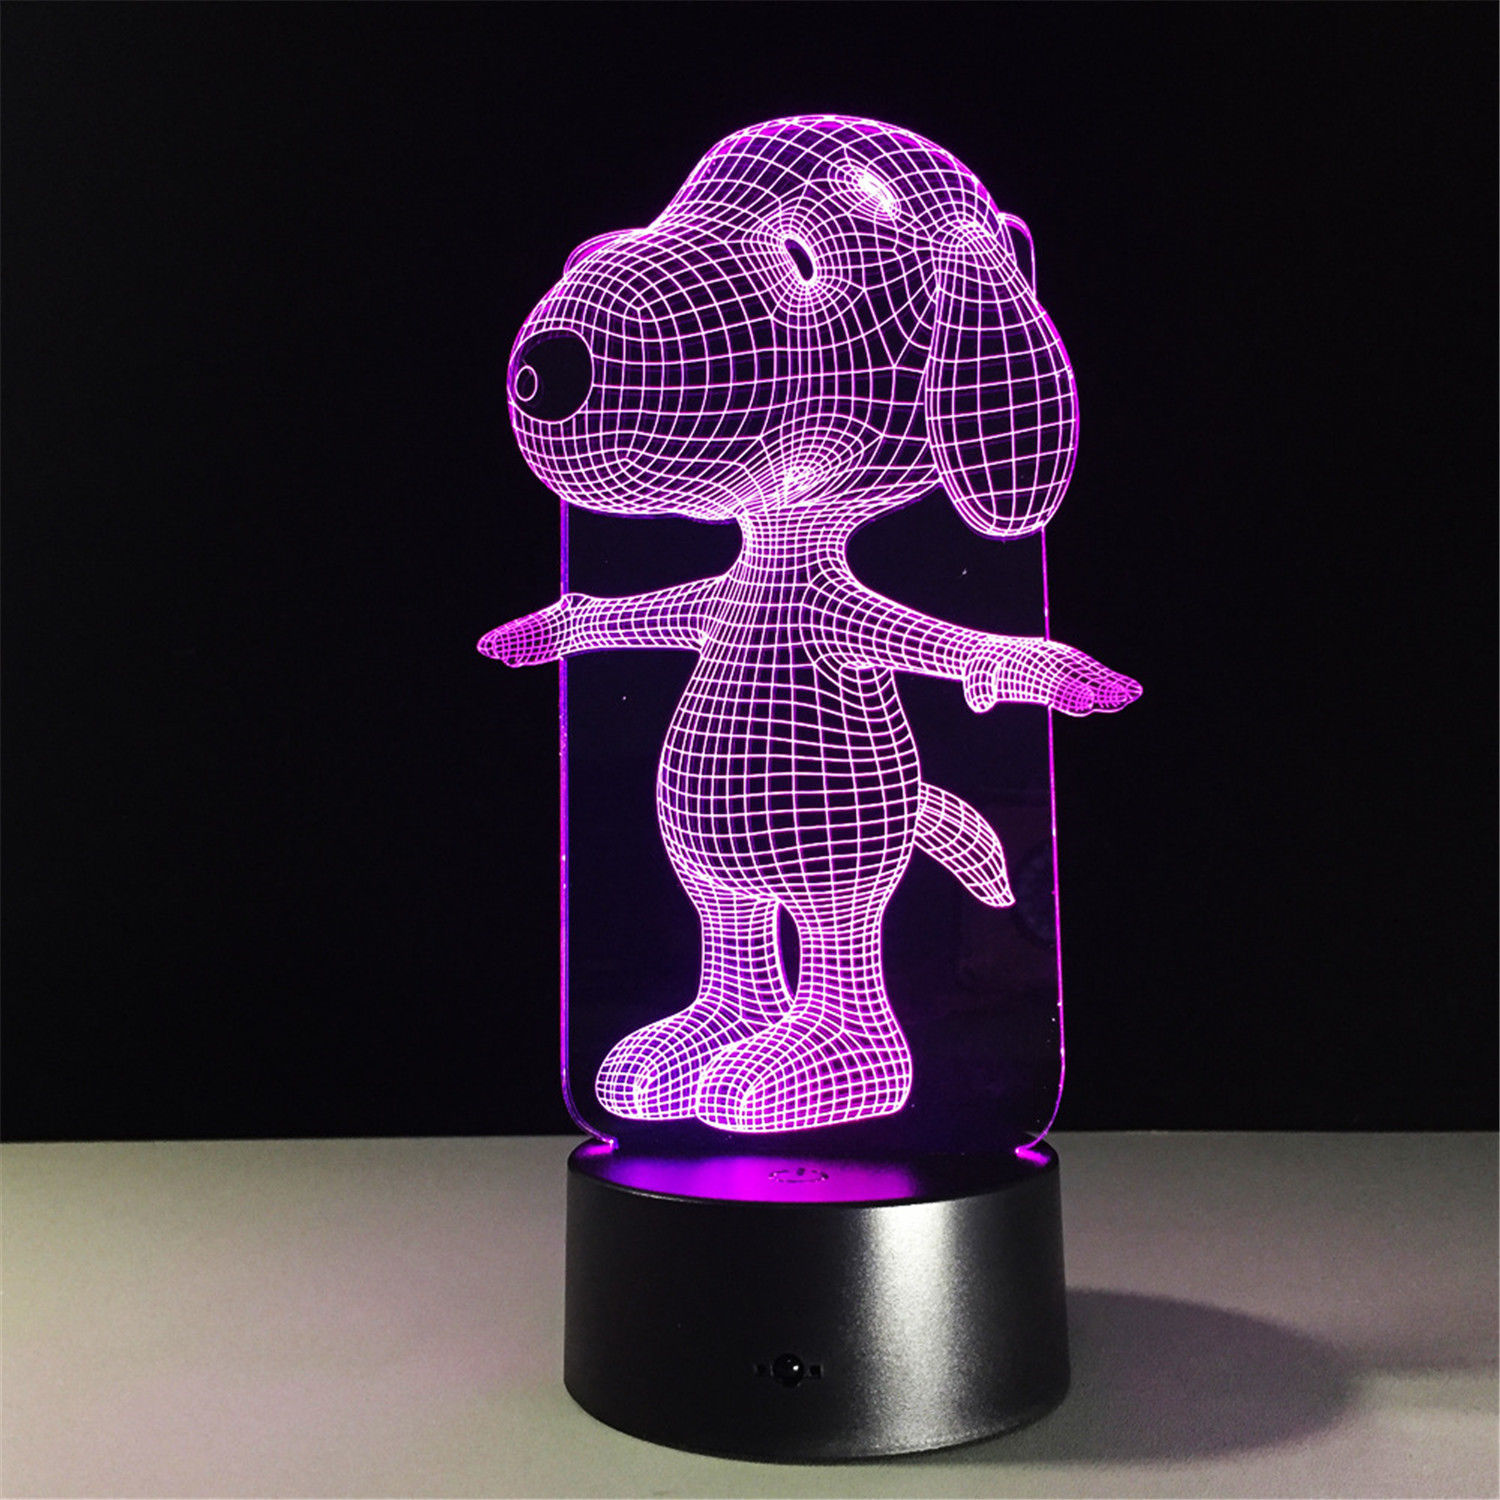 Visual Led Night Light Illusion Lamp Light Dog 3D Illusion Night Light Color Change Touch Switch Table Desk Led Lamp